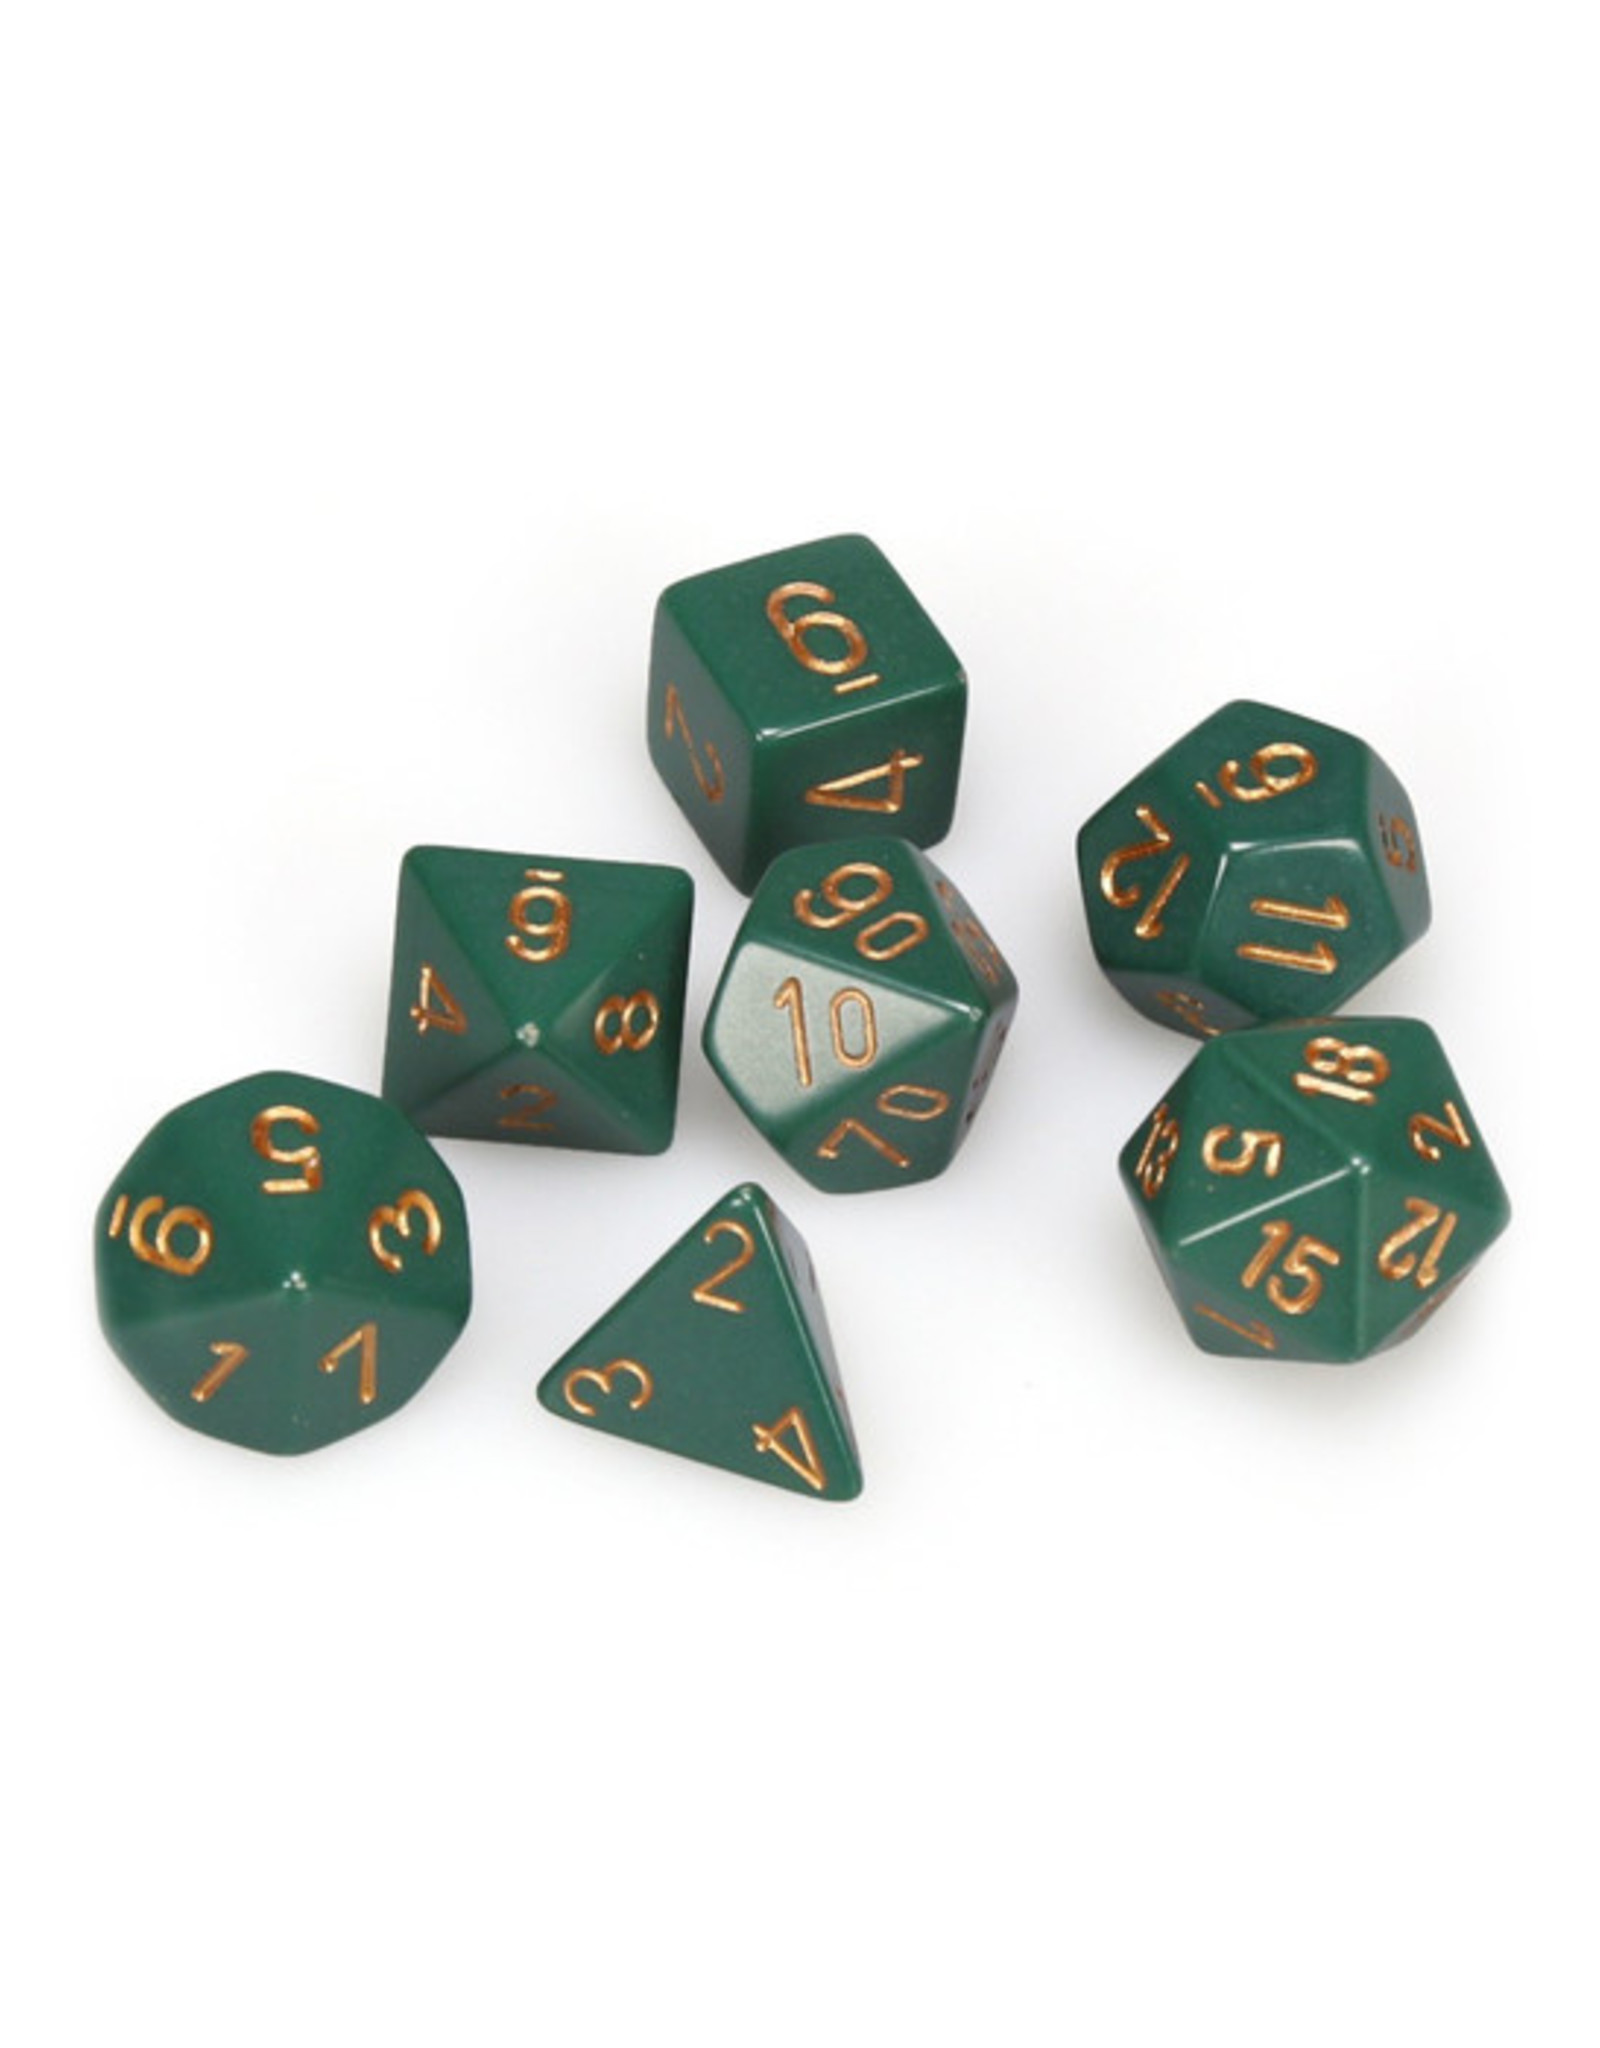 Chessex Chessex: Poly 7 Set - Opaque - Dusty Green w/ Copper